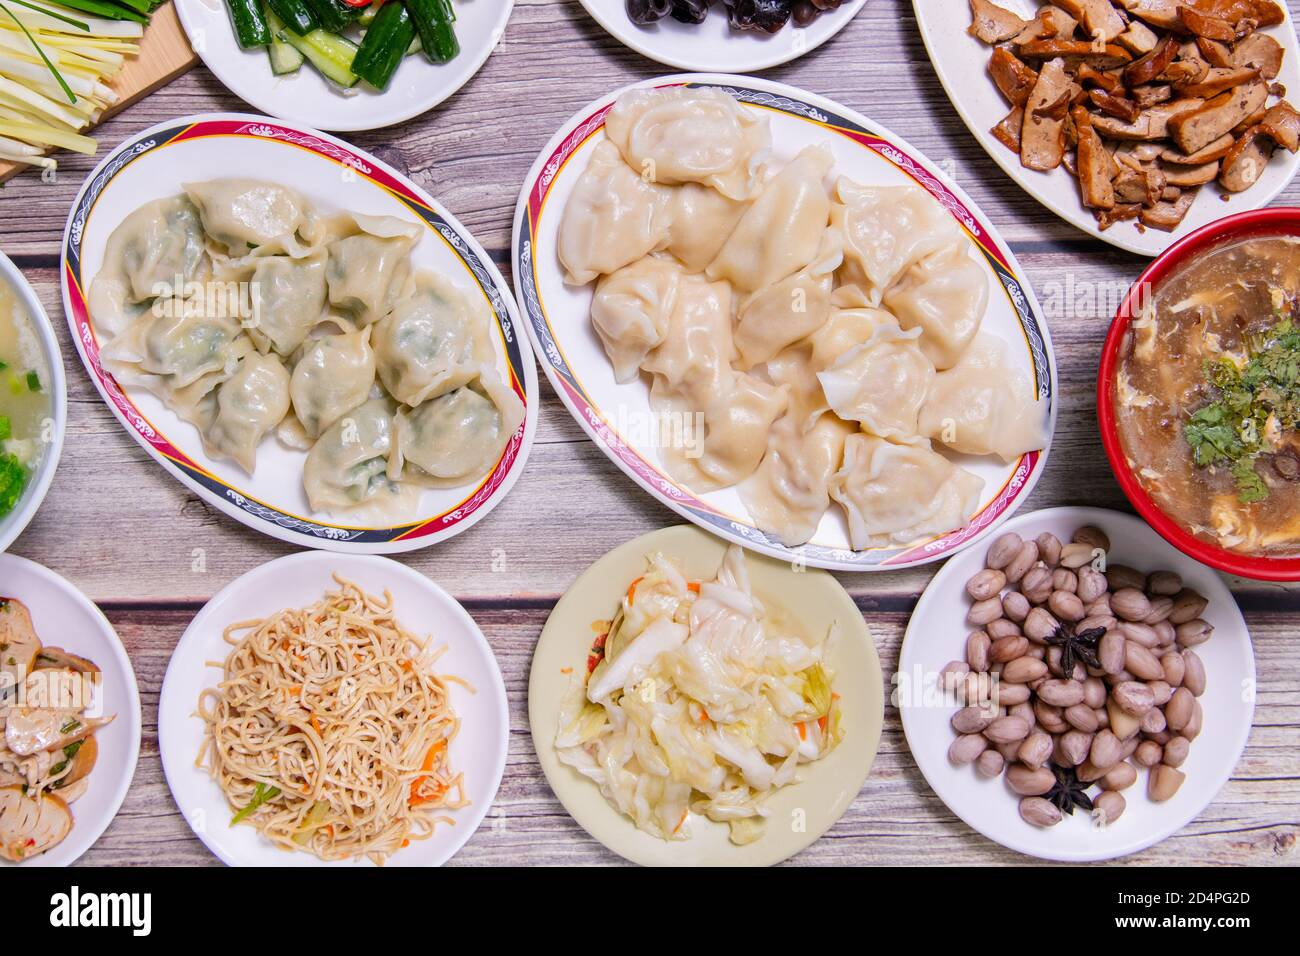 Boiled Dumpling Is Chinese Dumplings Or Potstickers In Boiling Water Dumpling Is A Dough And Wrapped Around A Filling The Dough Is Flour And The Fi Stock Photo Alamy